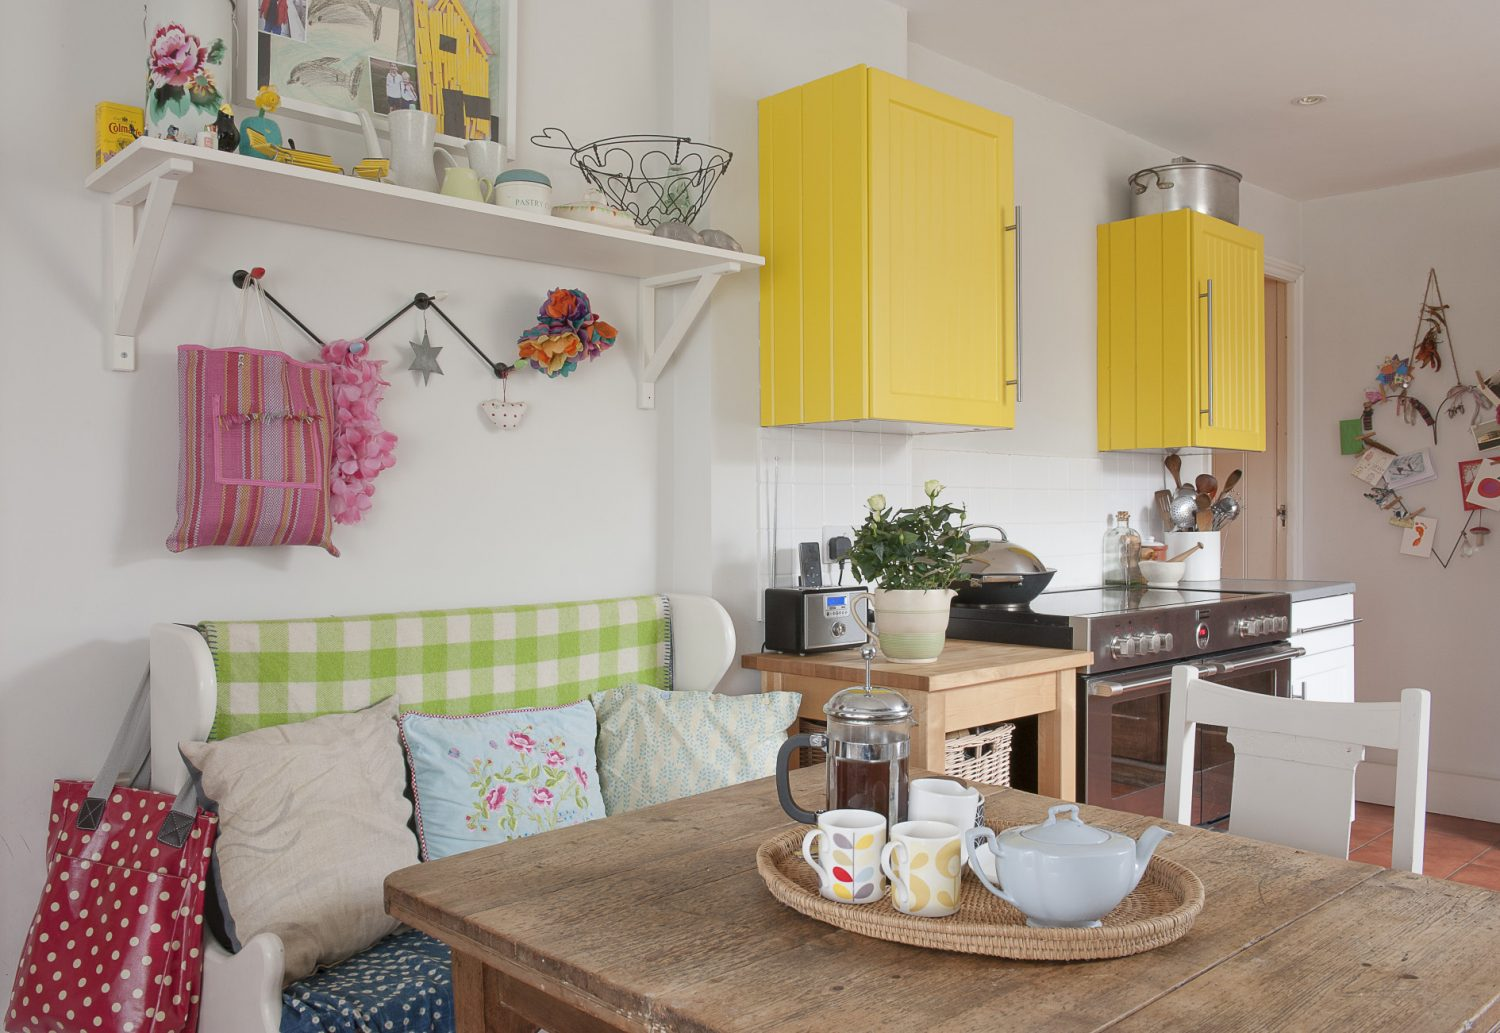 Canary yellow cupboards add a vibrant touch to the kitchen